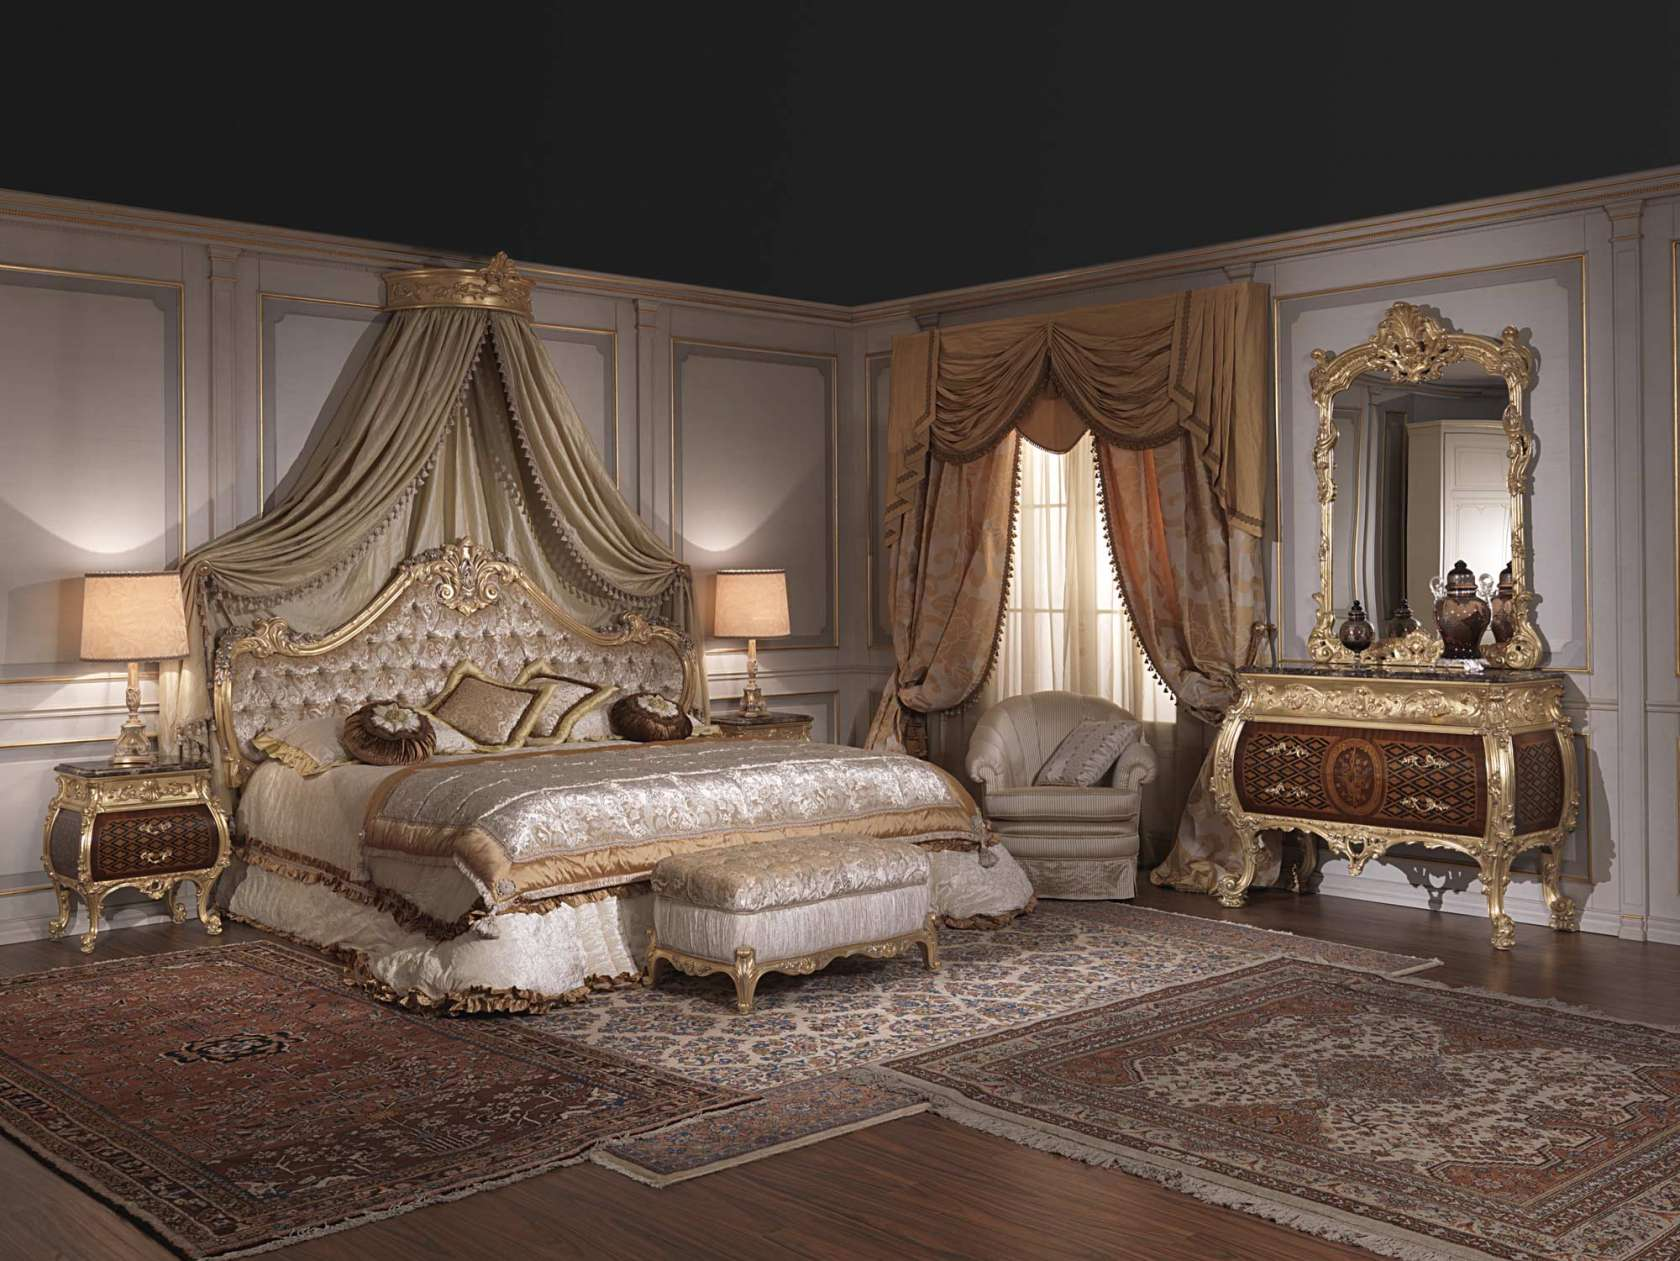 furniture for luxury bedroom emperador gold art 397 931 - Luxury Bedroom Furniture